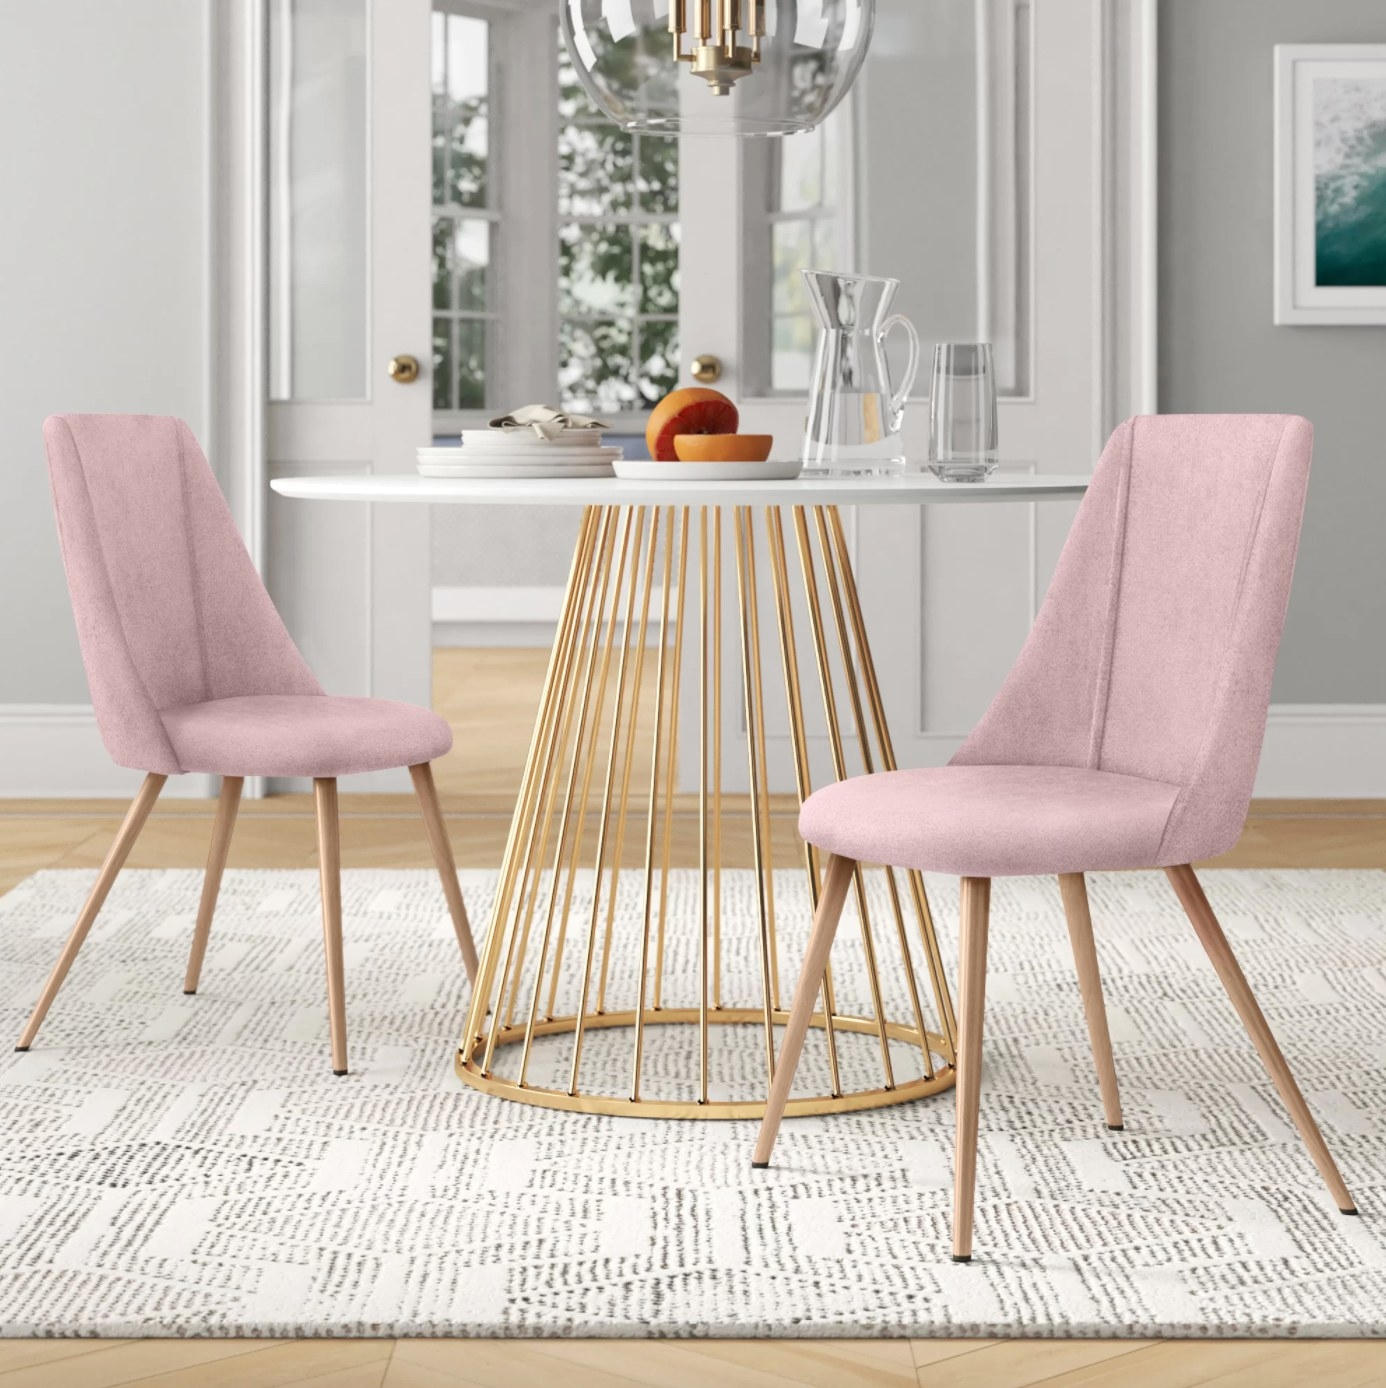 The set of two upholstered chairs in pink